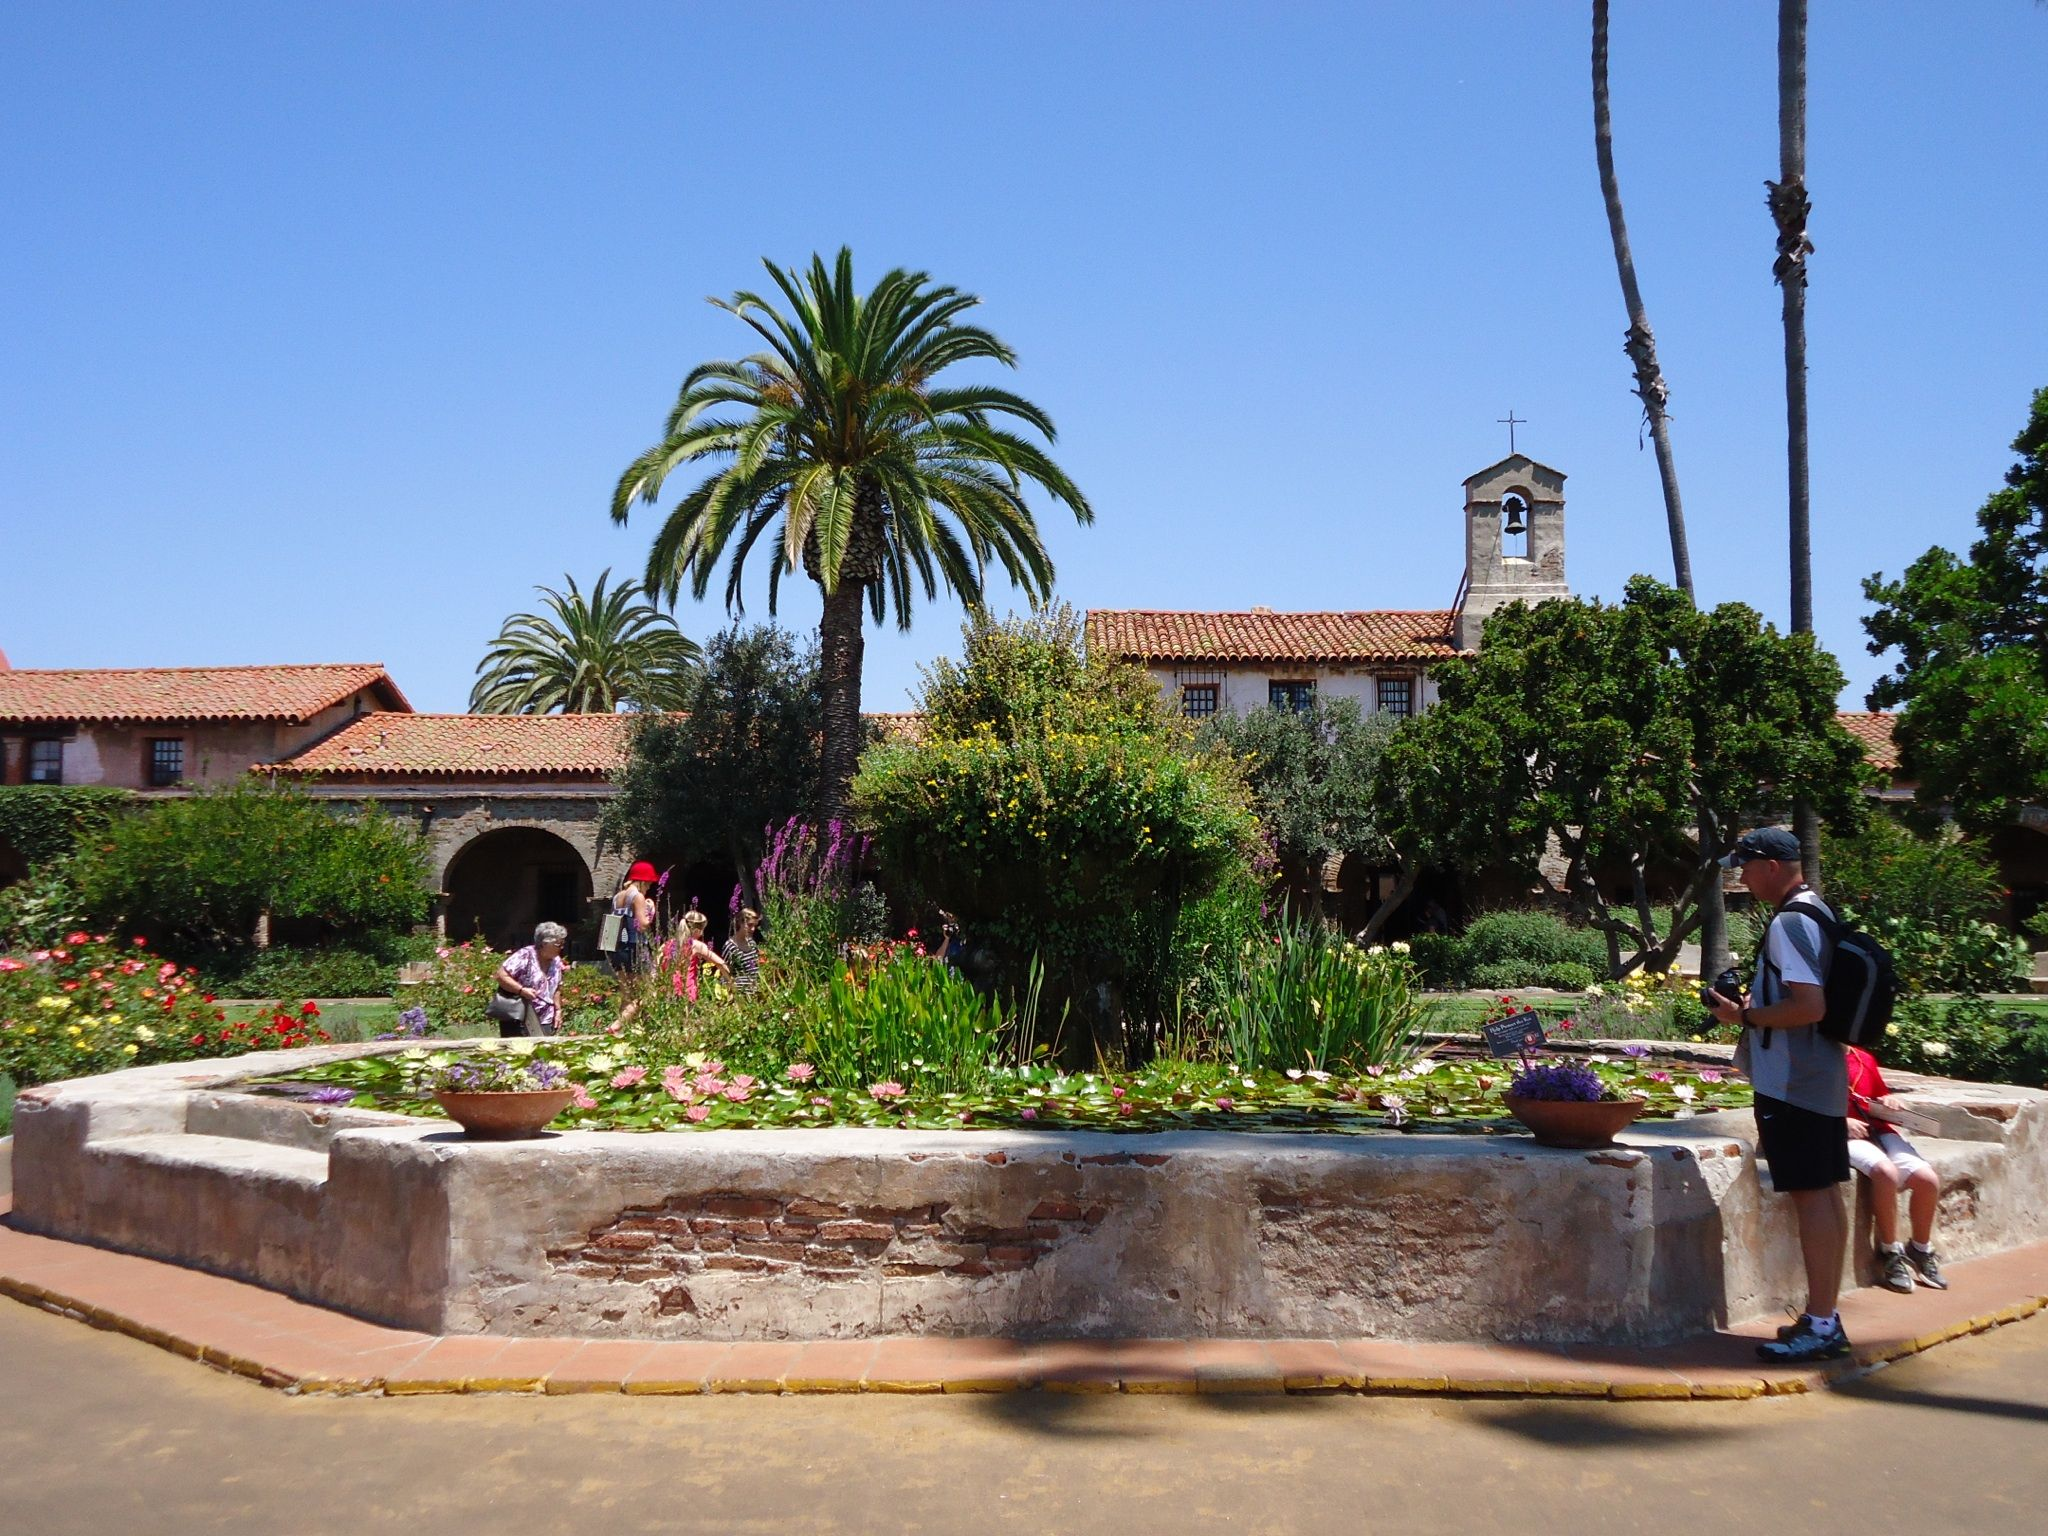 The mission, San Clemente.